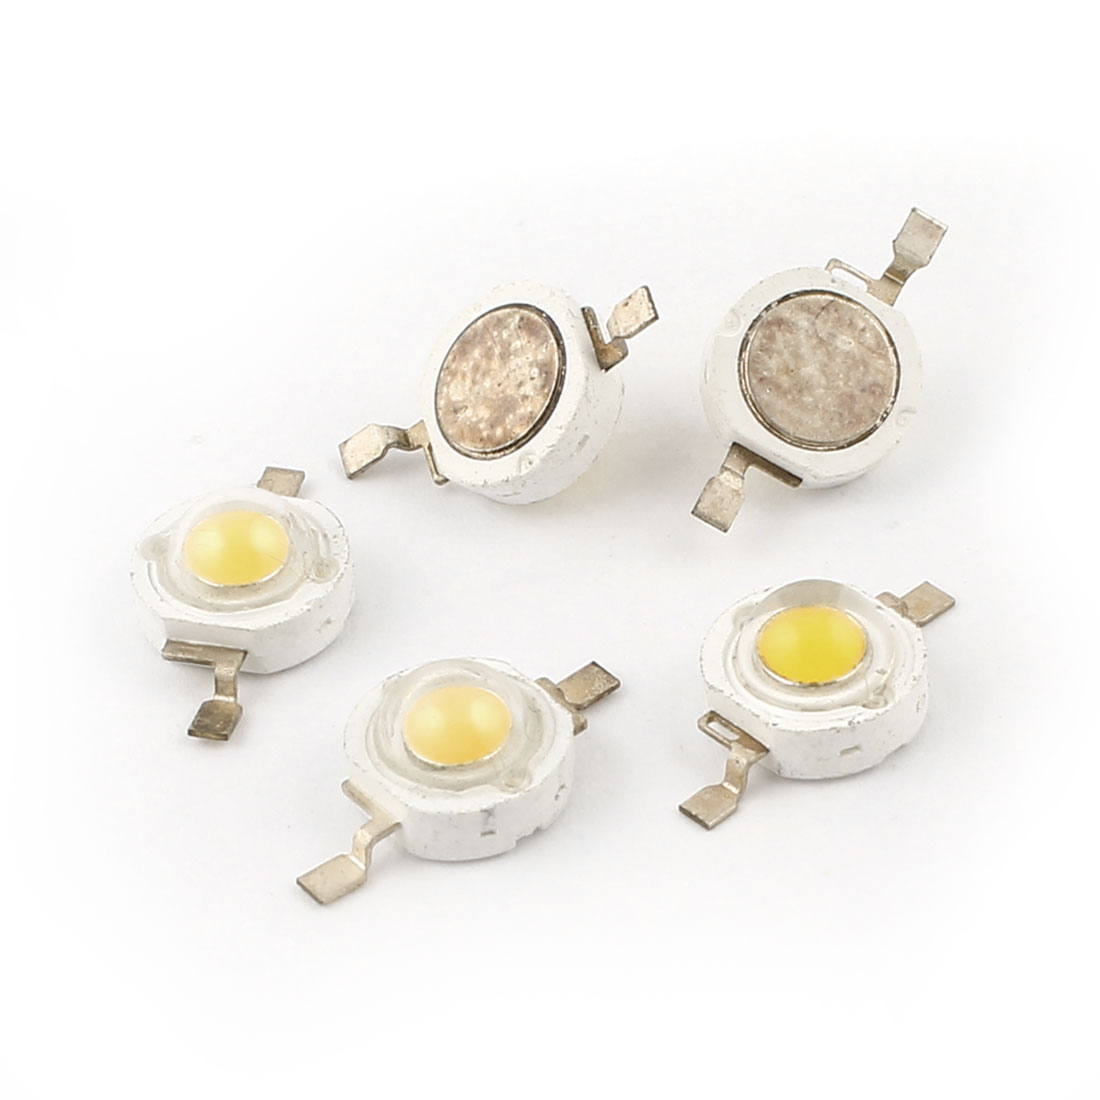 5 Pcs Warm White Light Emitting Diode Chip LED 1W 100LM